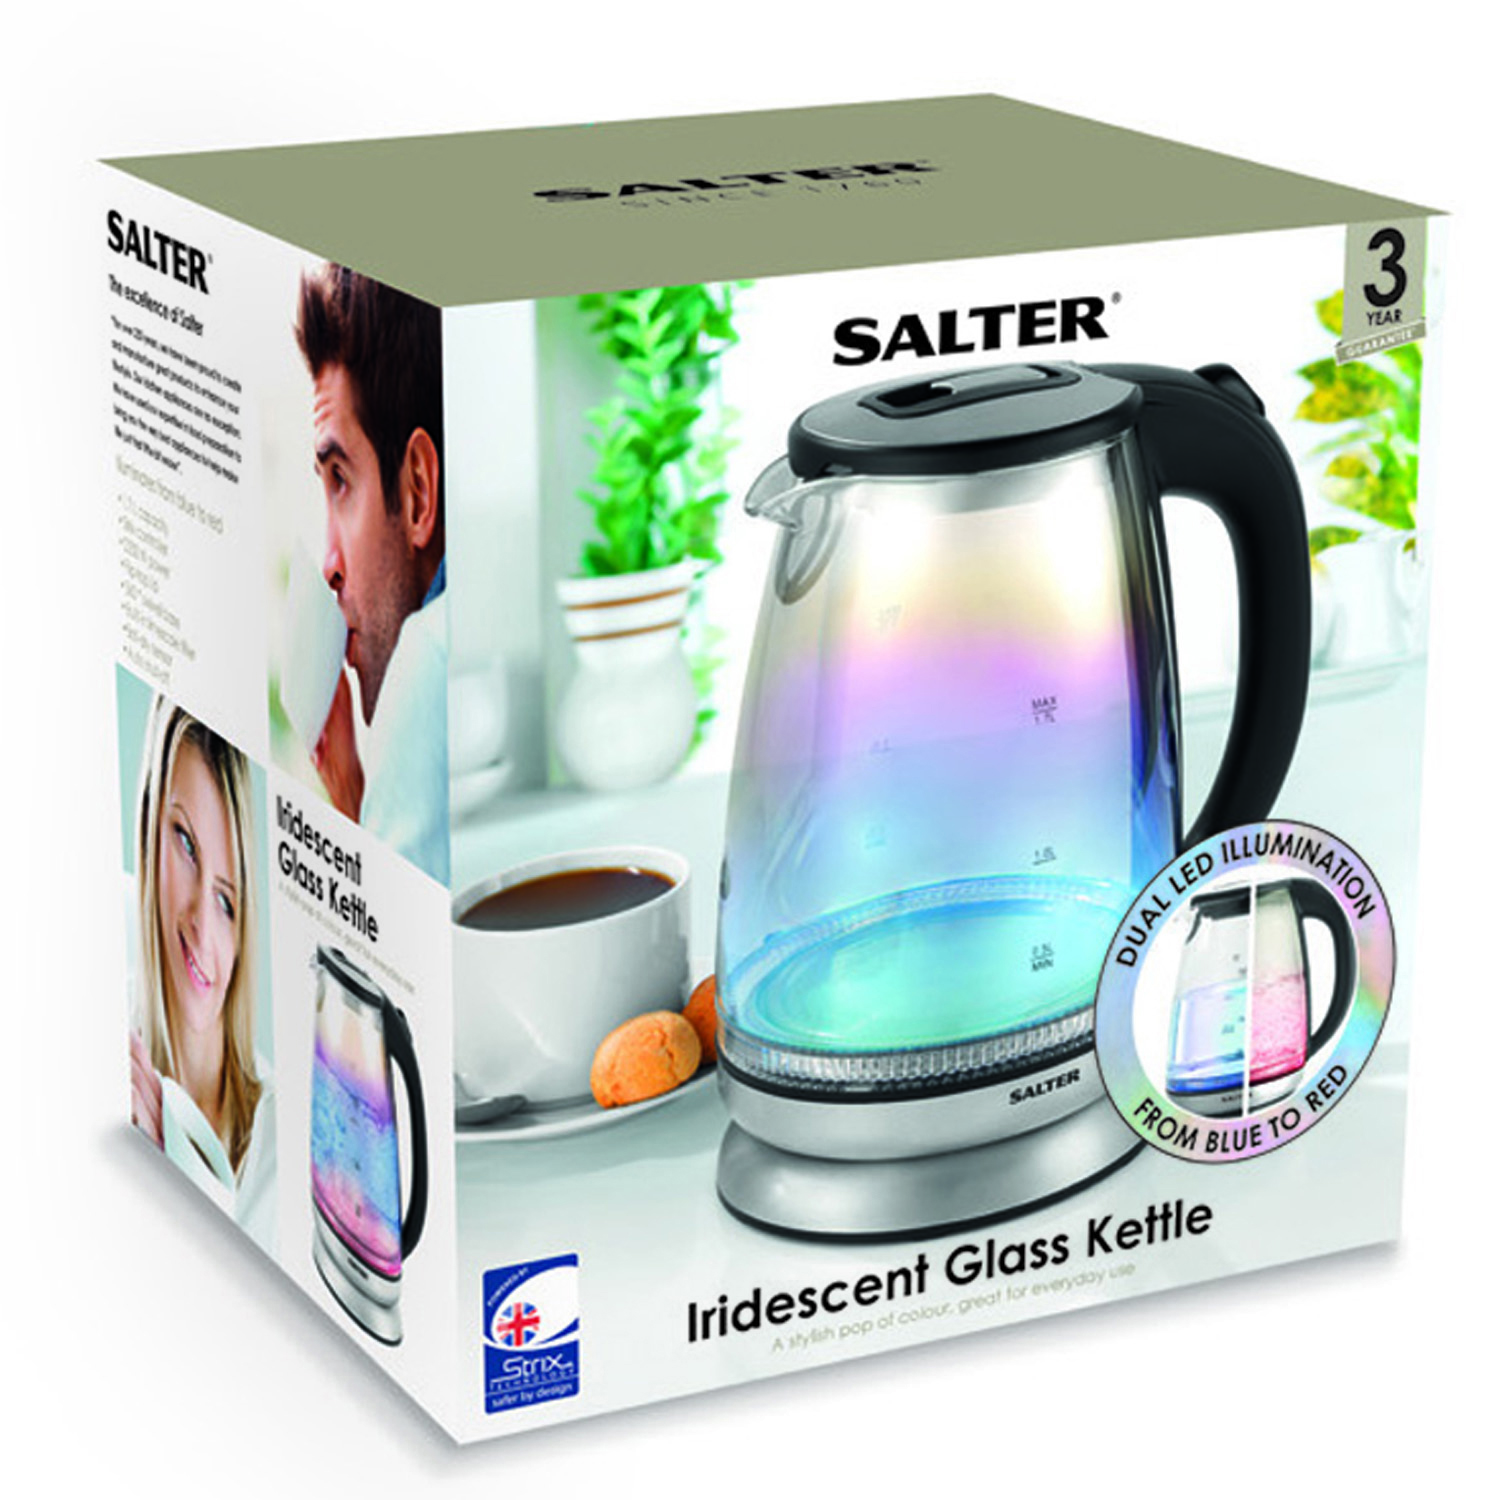 Salter EK2841IR Iridescent Glass Kettle with Blue to Red Illumination, 1.7 L, 2200 W, Stainless Steel Accents Thumbnail 8